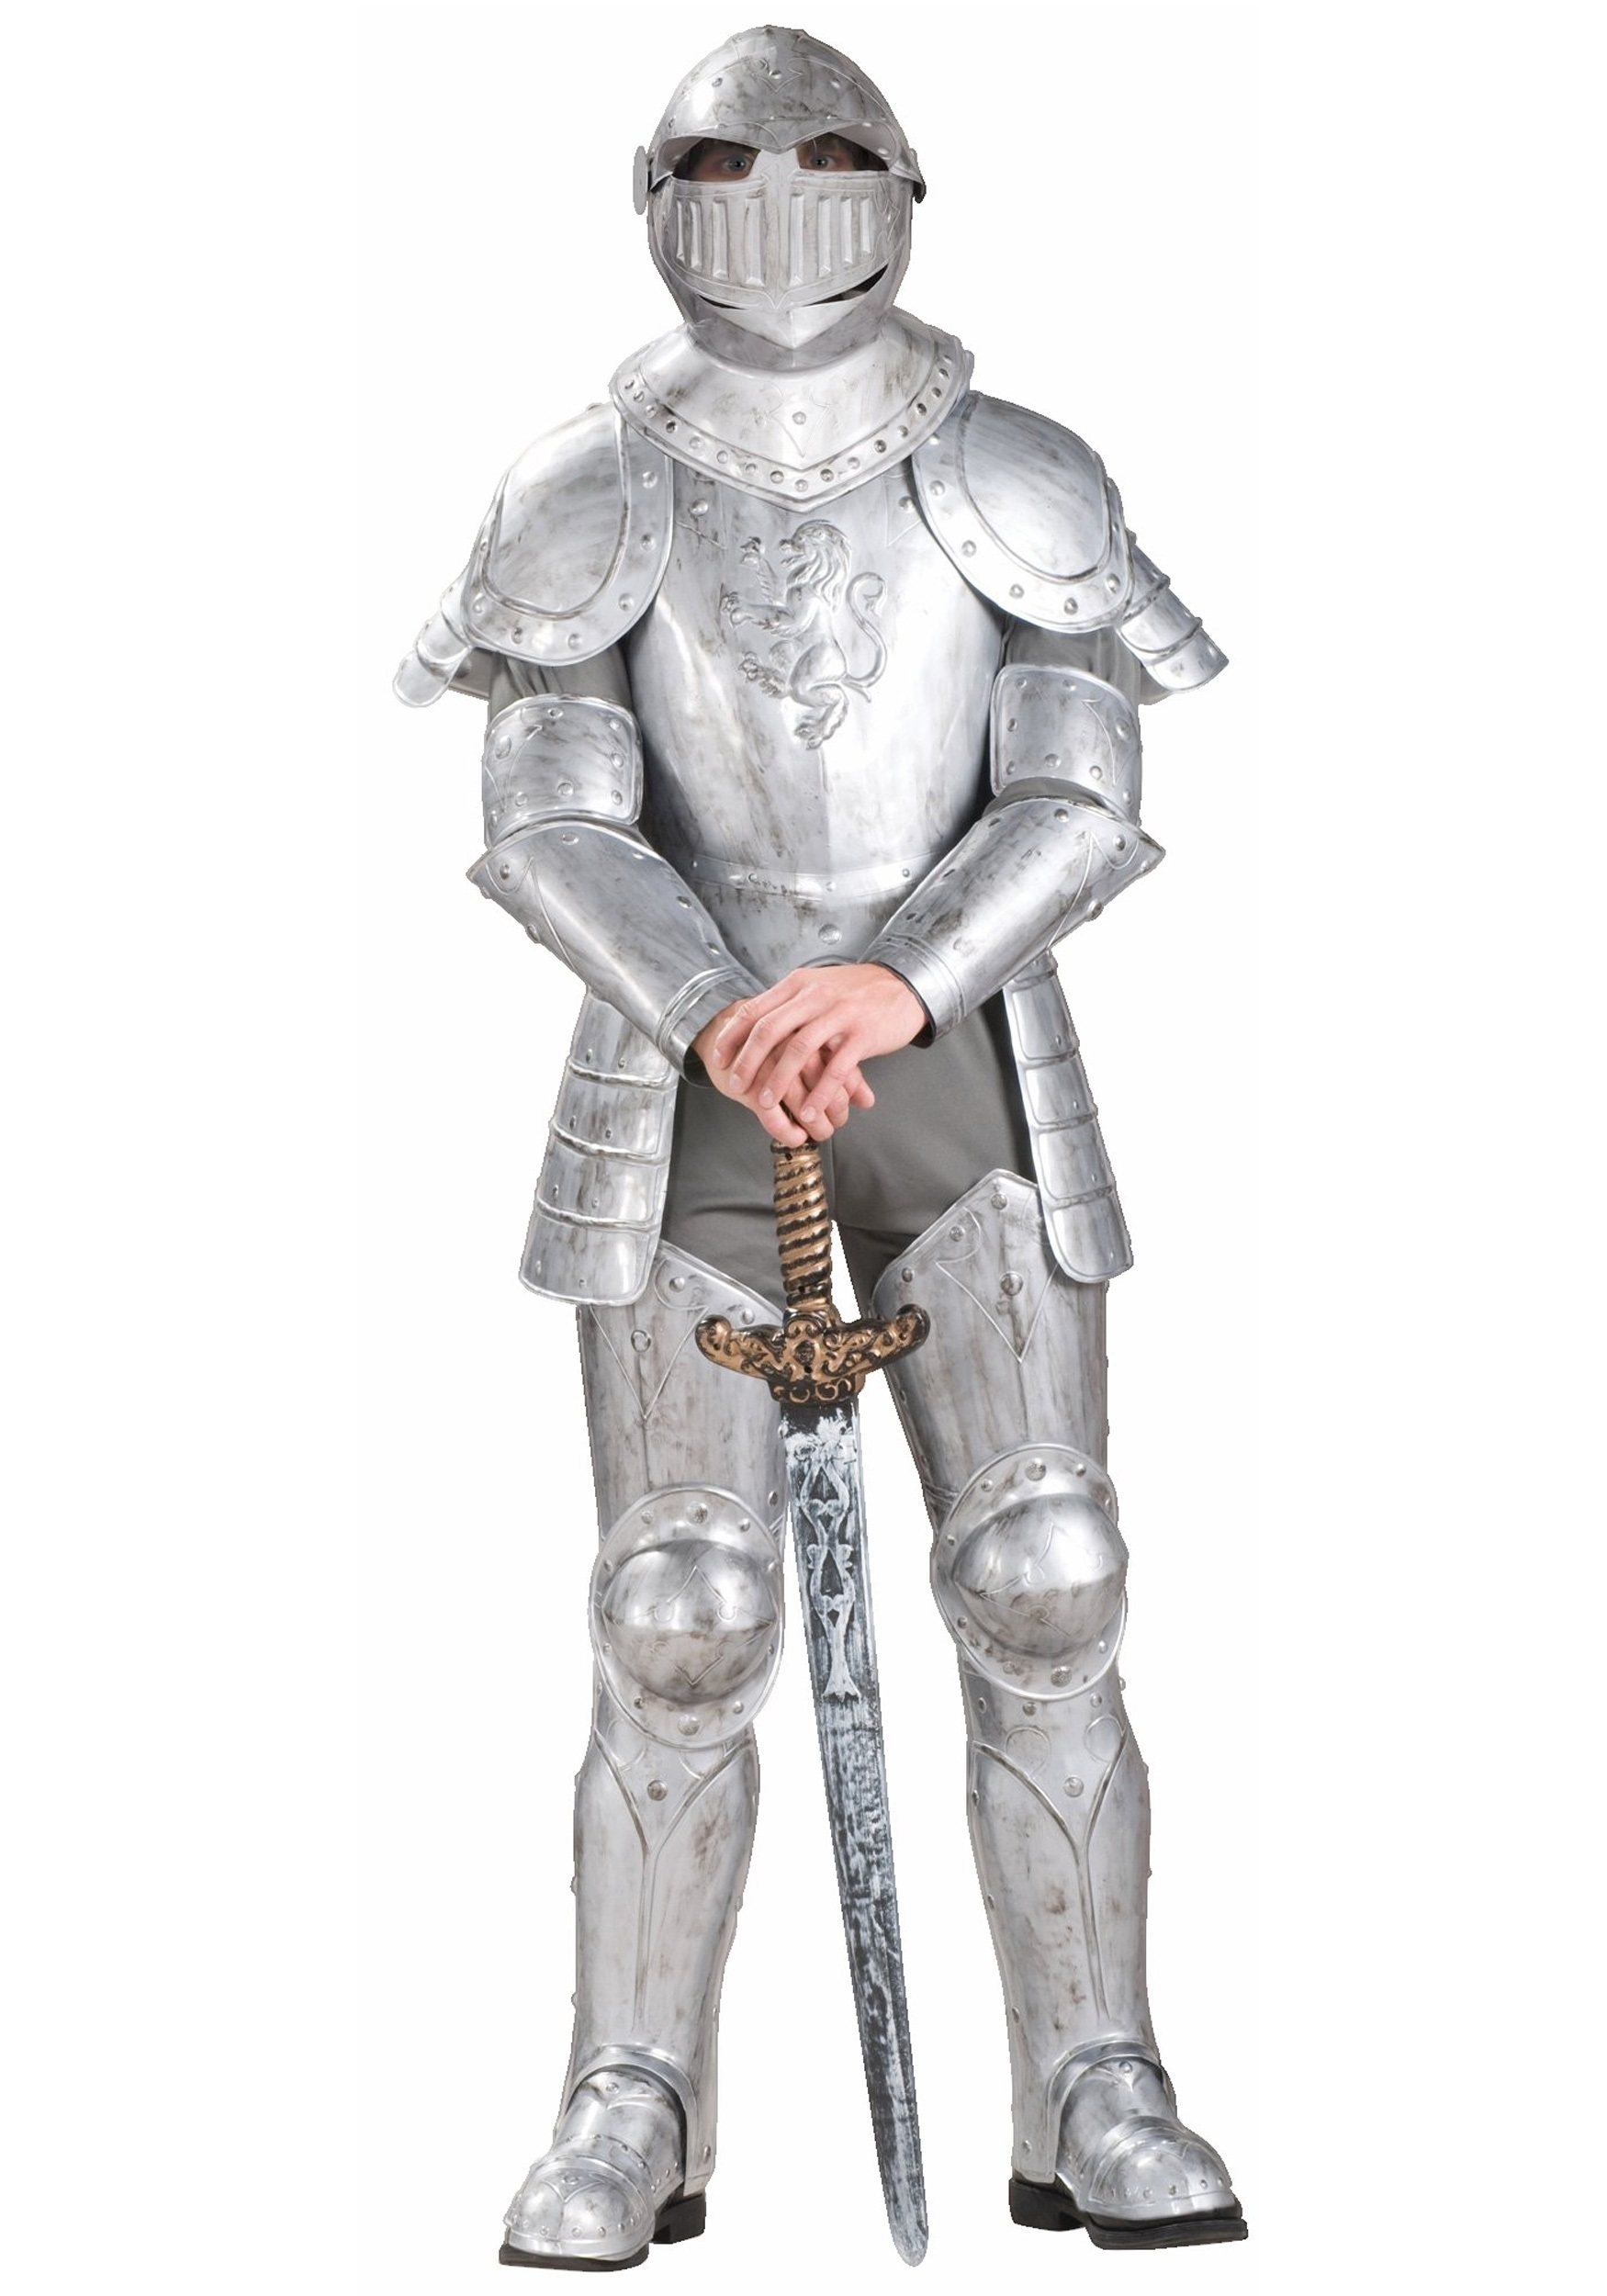 The adult knight costume includes a grey, polyester shirt, pants and hood.